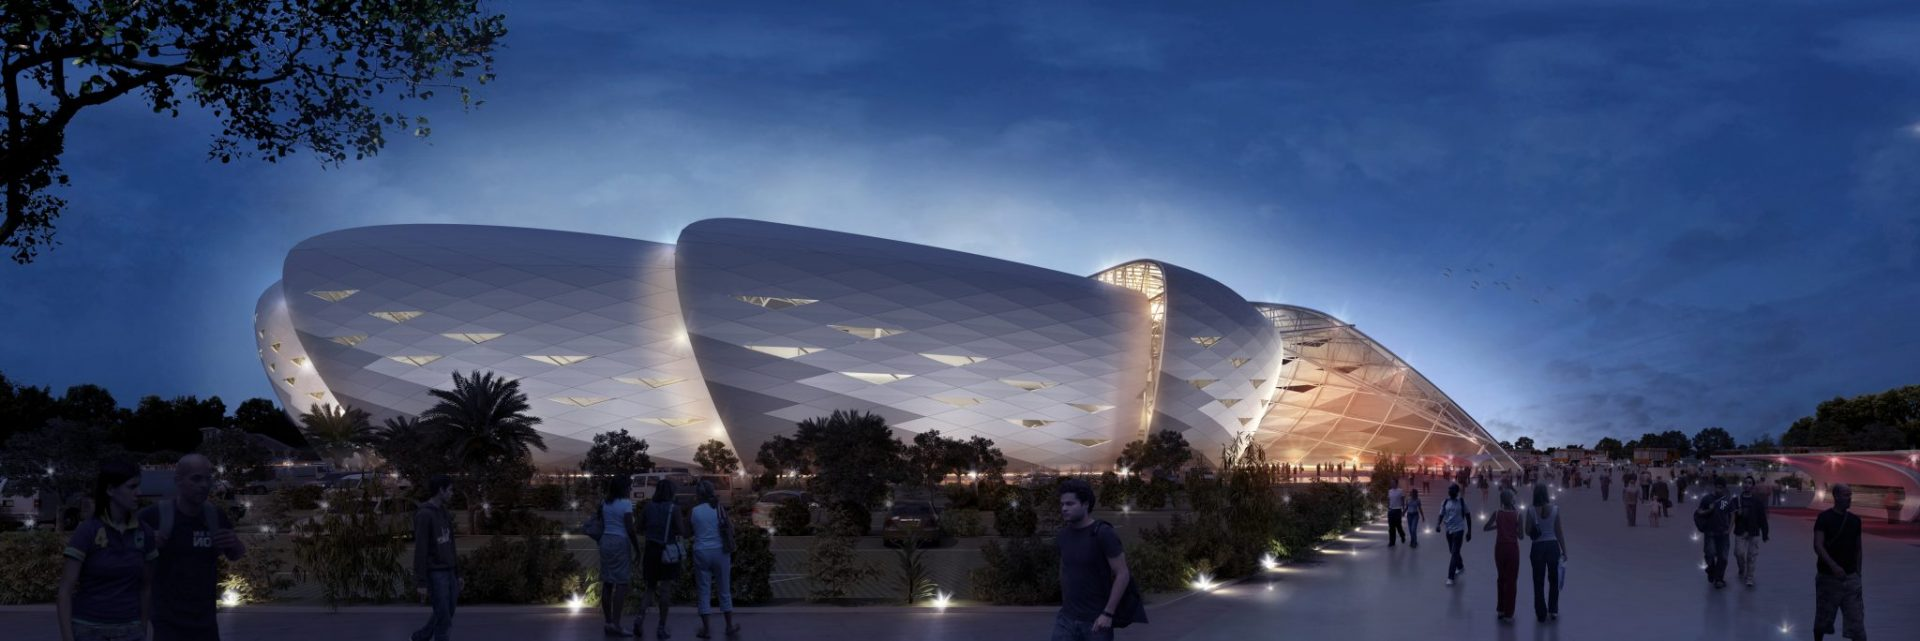 JLA Group Architectural engineering design Consultancy Abu Dhabi